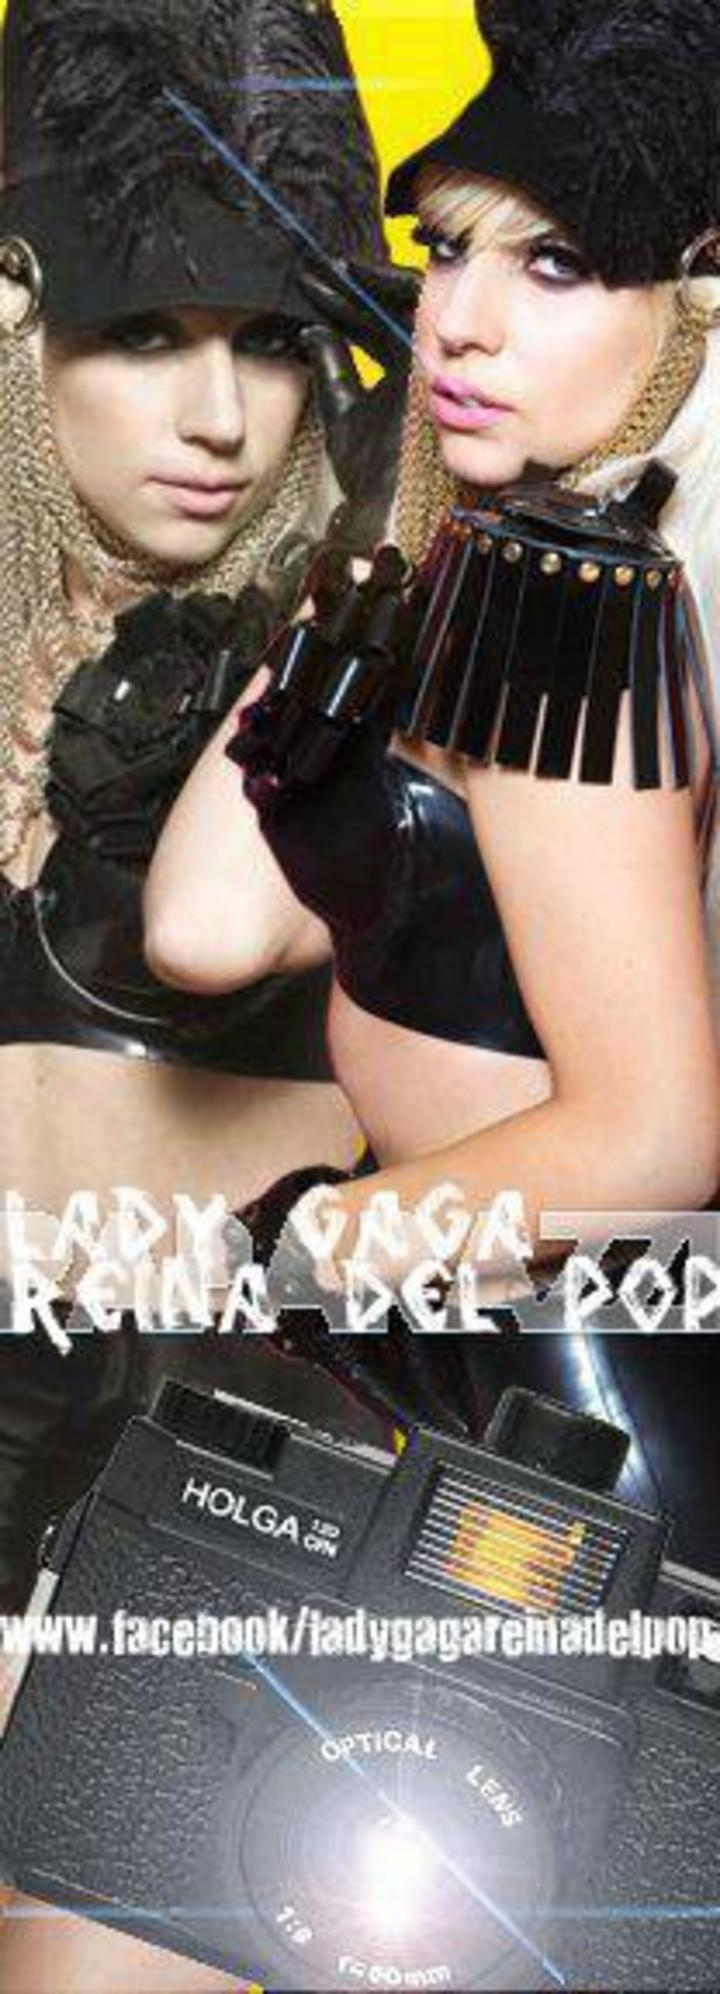 Lady Gaga Reina del Pop Tour Dates